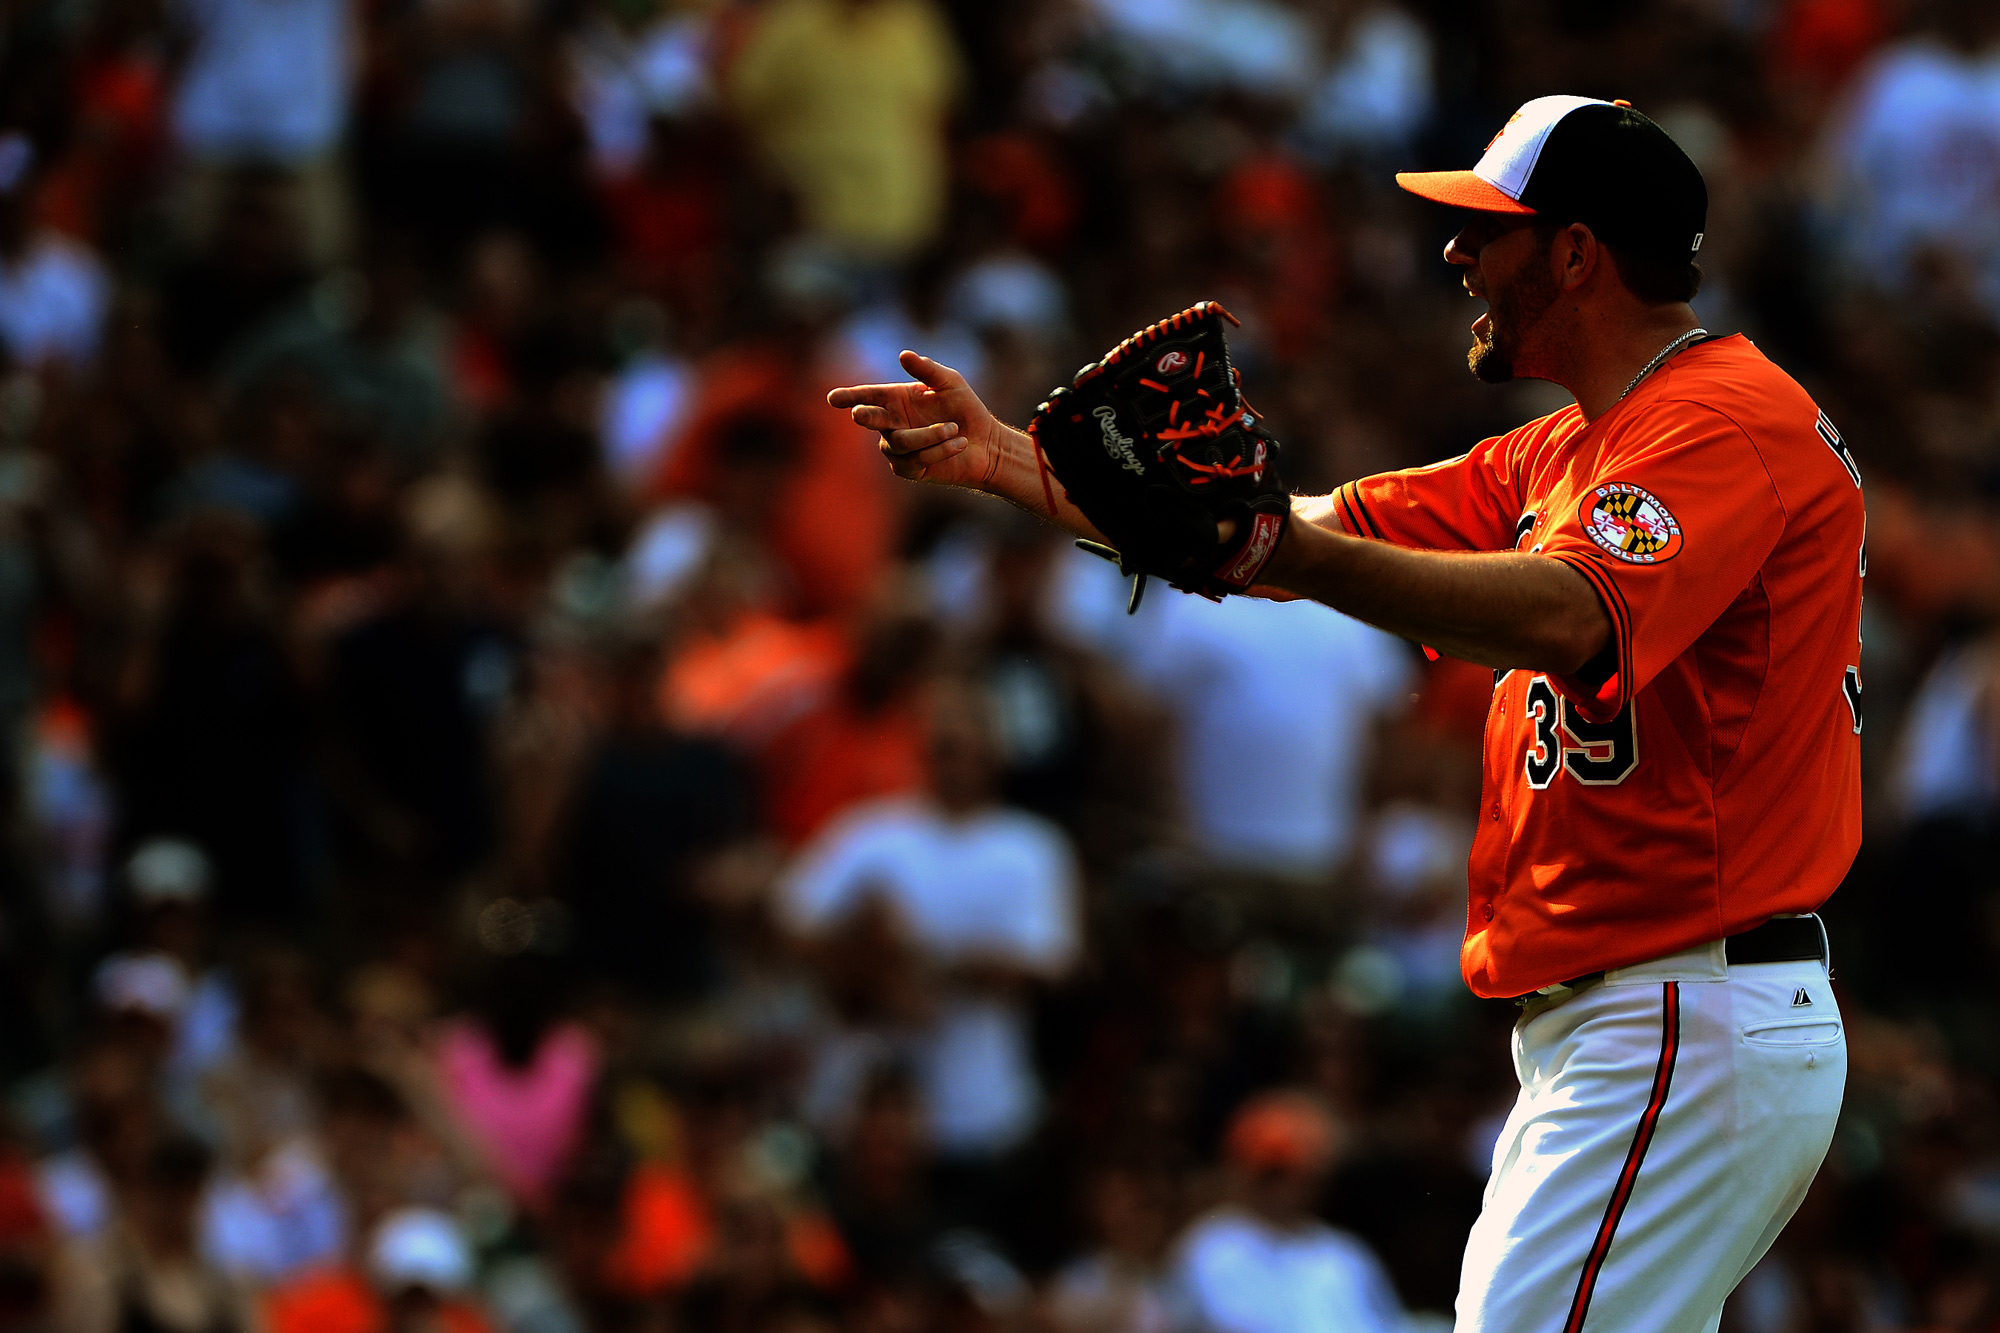 Baltimore Orioles pitcher Jason Hammel argues with the umpire after being ejected from a home game on June 1, 2013 at Oriole Park at Camden Yards in Baltimore, Md.